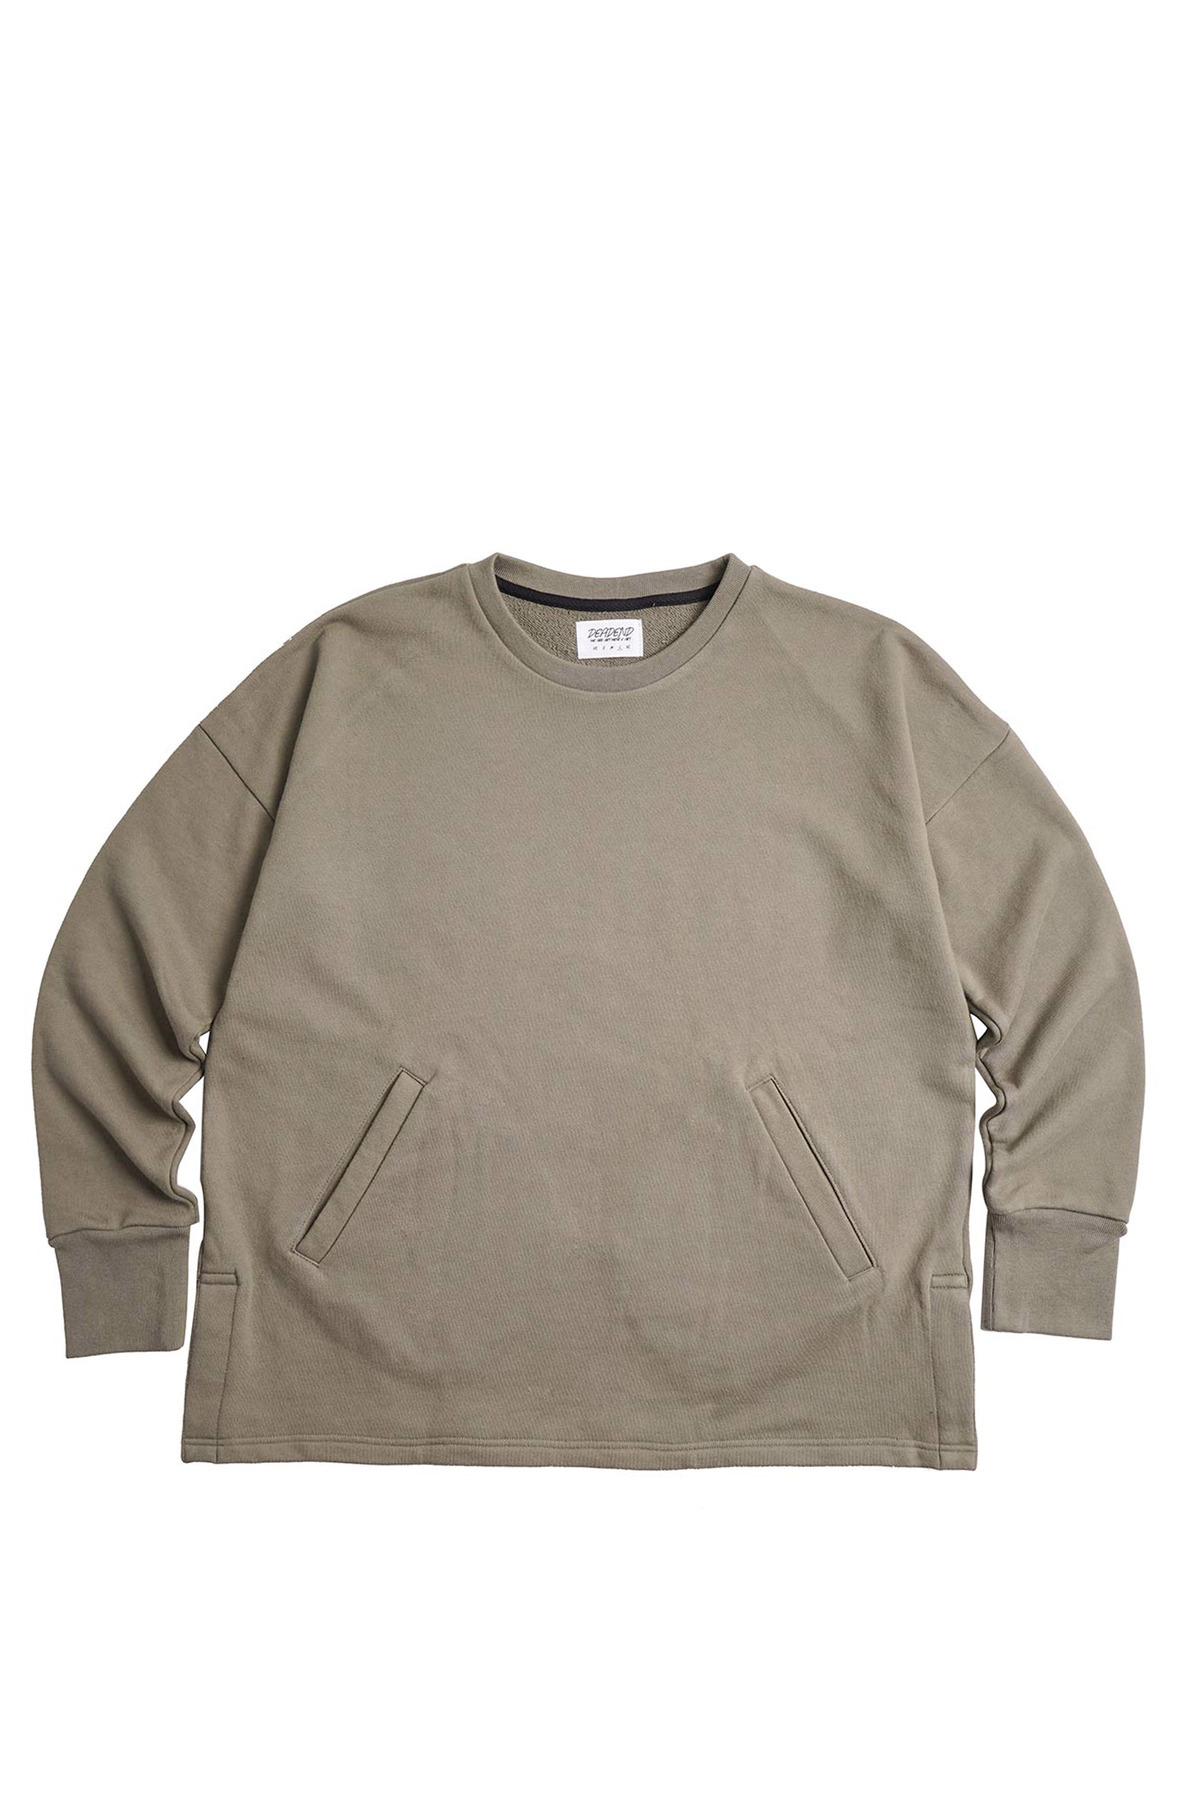 KHAKI SET IN RAGLAN SWEAT SHIRTS